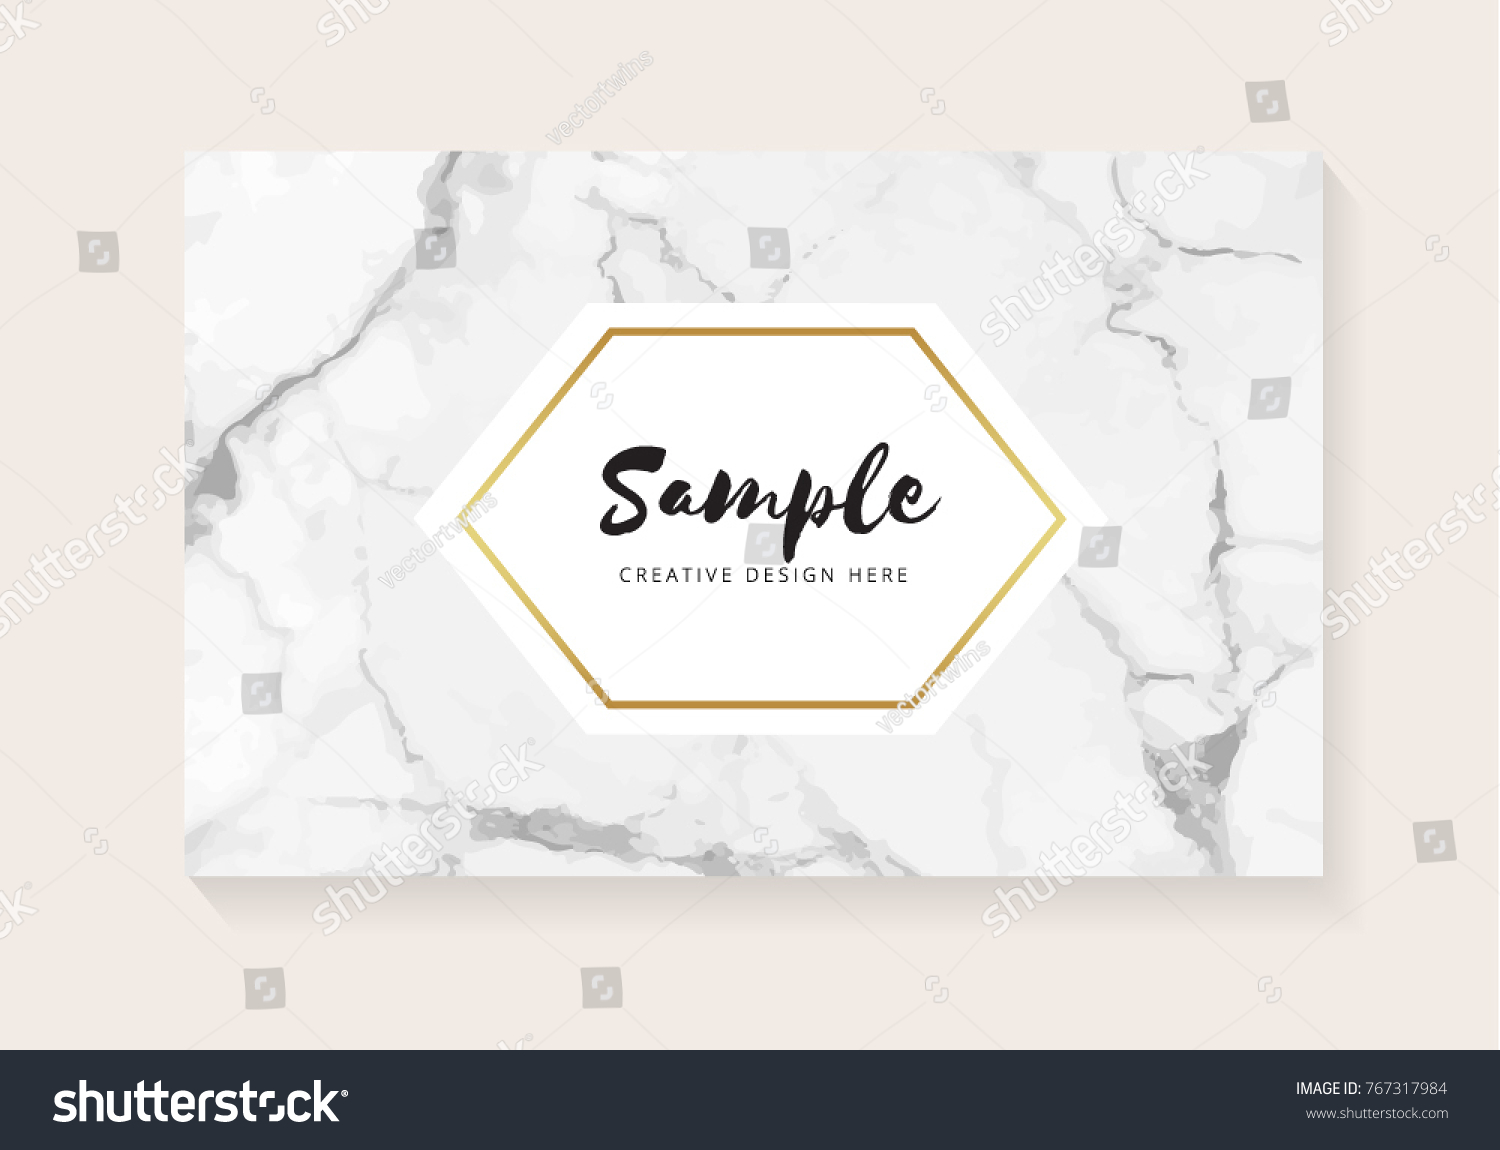 Luxury Business Cards Marble Texture Gold Stock Vector 767317984 ...